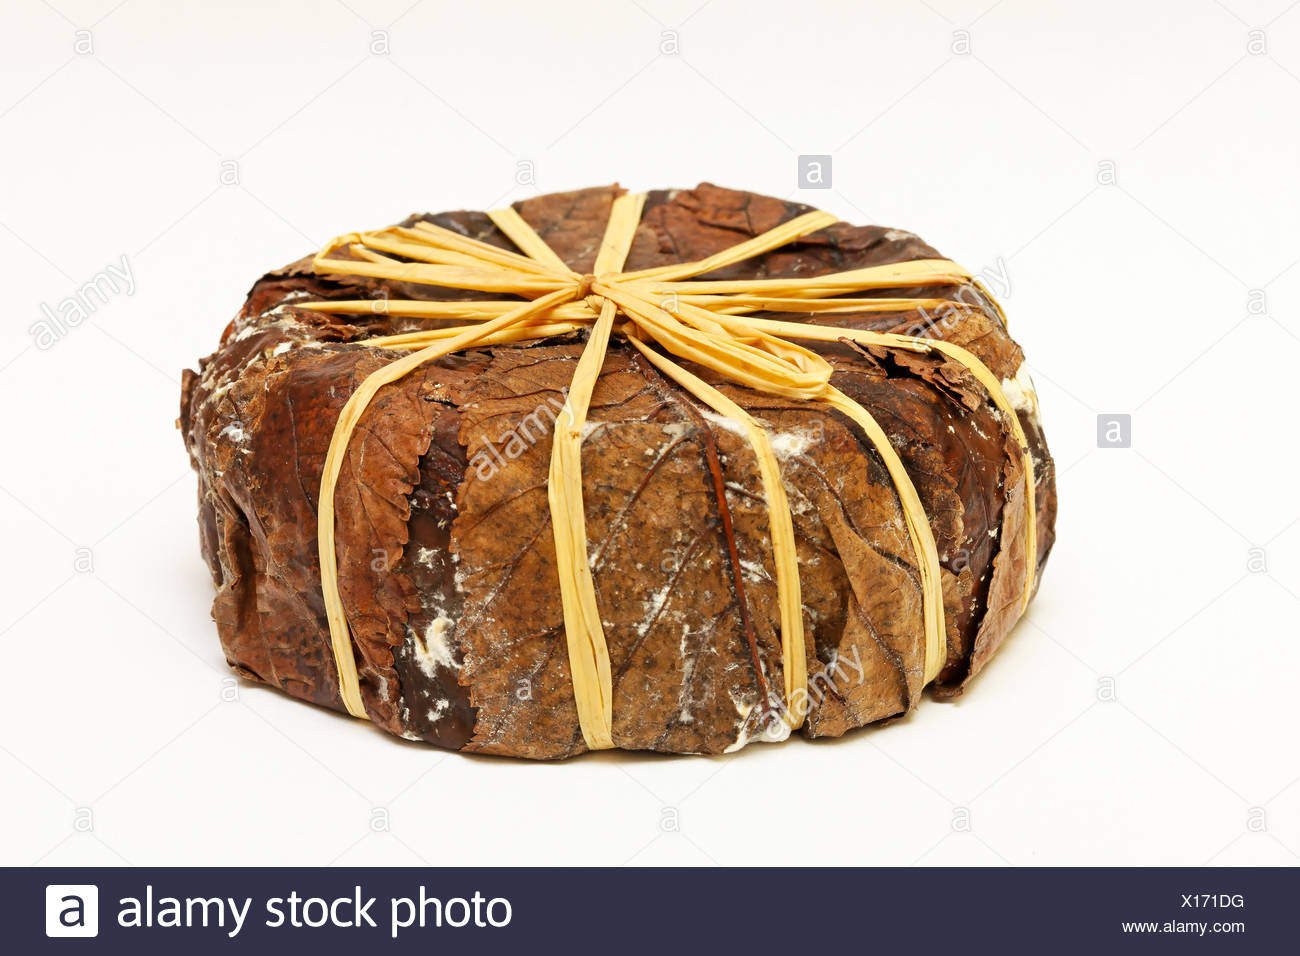 Old chevre cheese - Stock Image